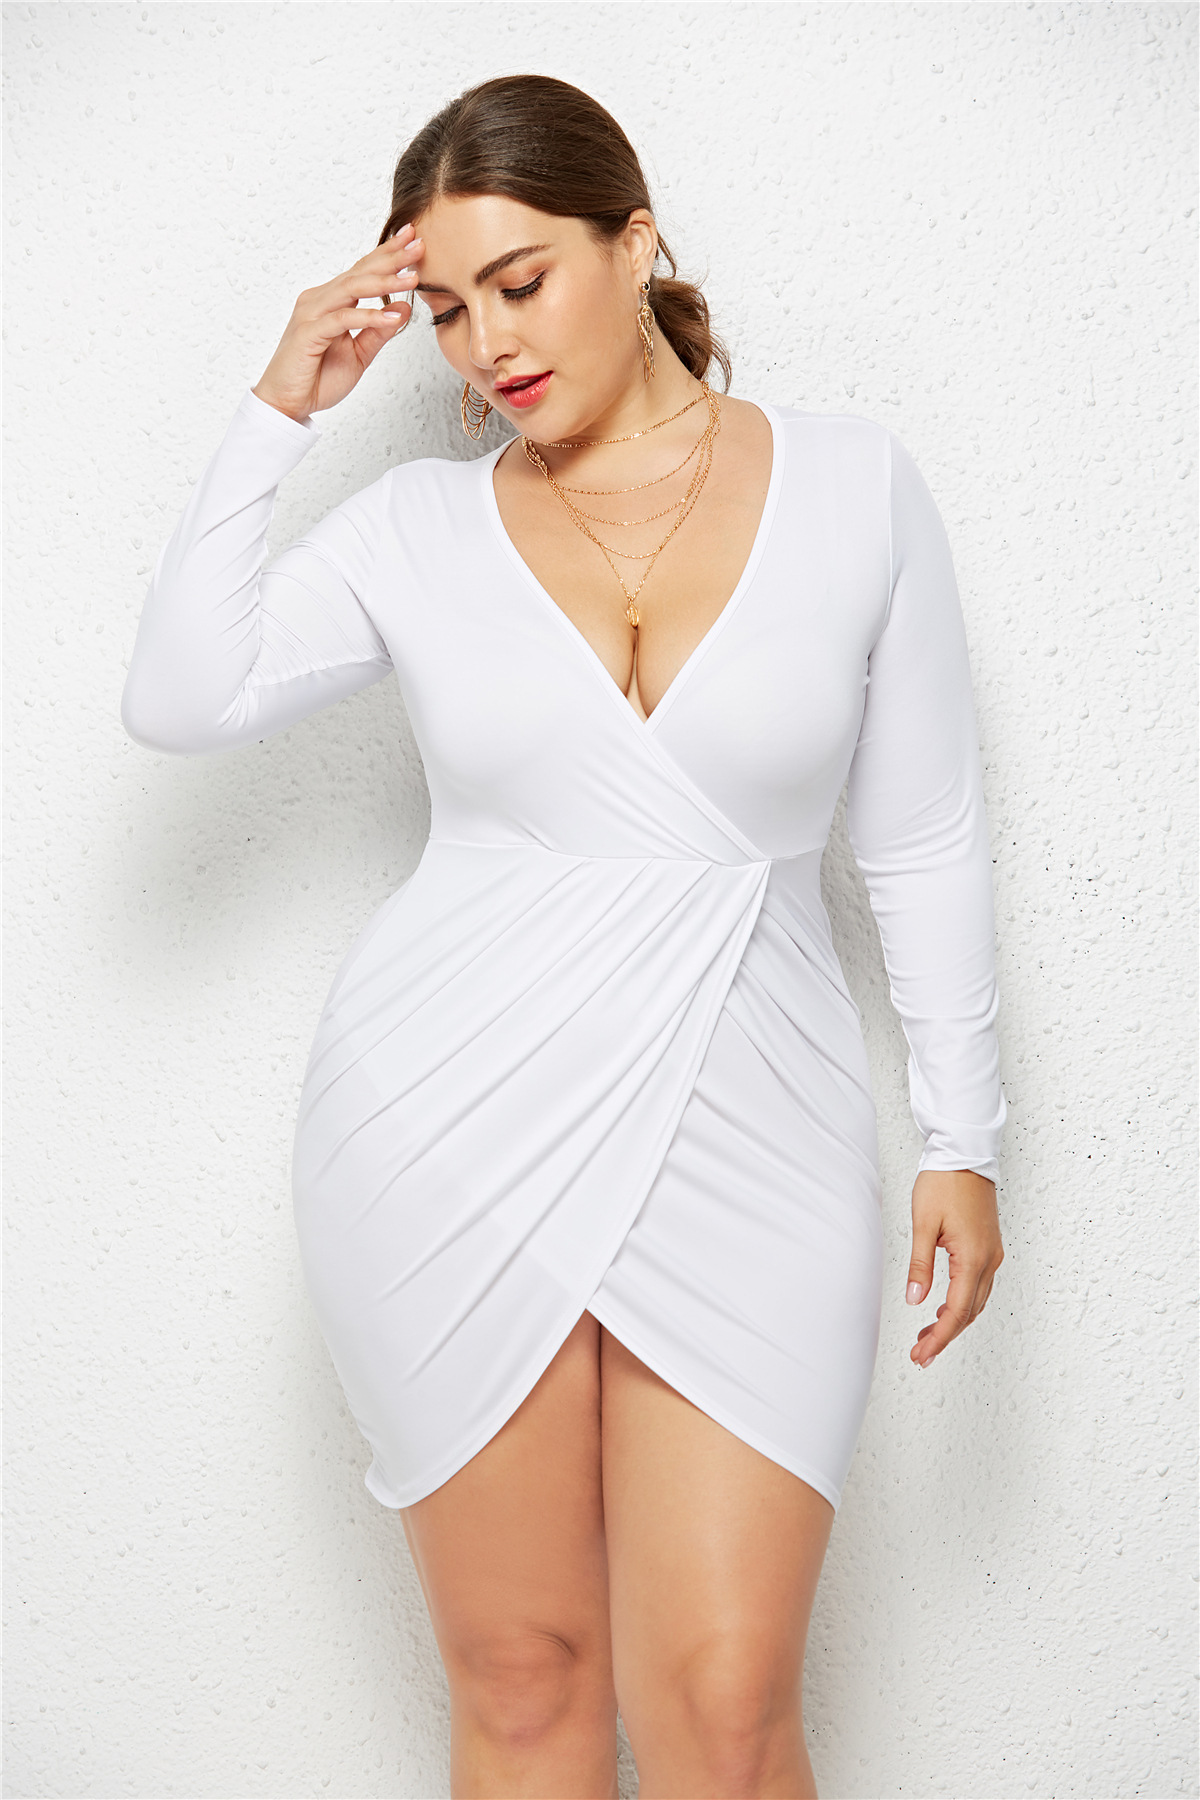 Details about Women Plus Size V-neck Long Sleeve Dress Pleated Bodycon  Party Prom Mini Dresses